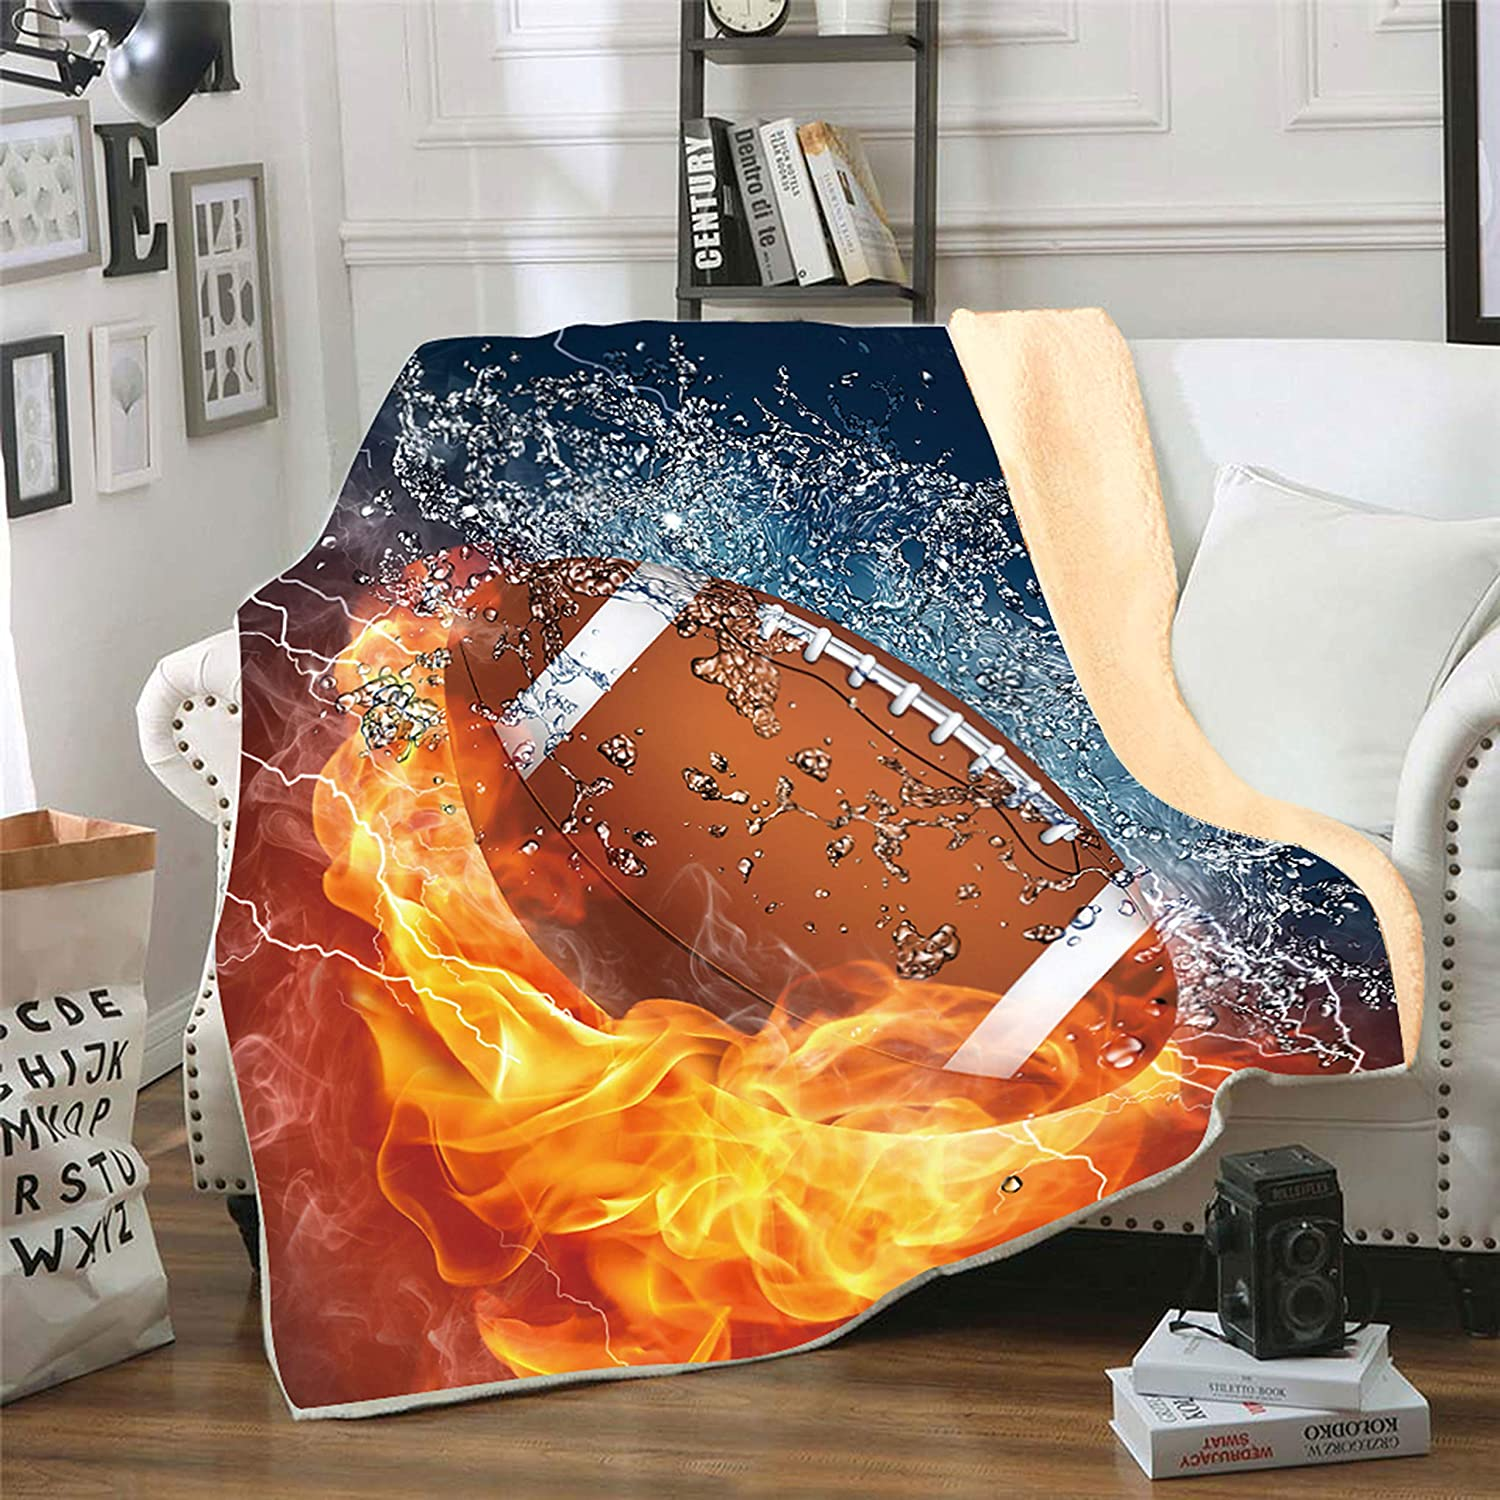 Softball Red Flame Flannel Fleece Throw Blanket,SKOLOO 3D Printed Warm Fluffy Cozy Soft TV Bed Couch Sport Fans Boys Teens Gift Blanket Comfy Microfiber Velvet Plush Throw,Kids 60 x 80